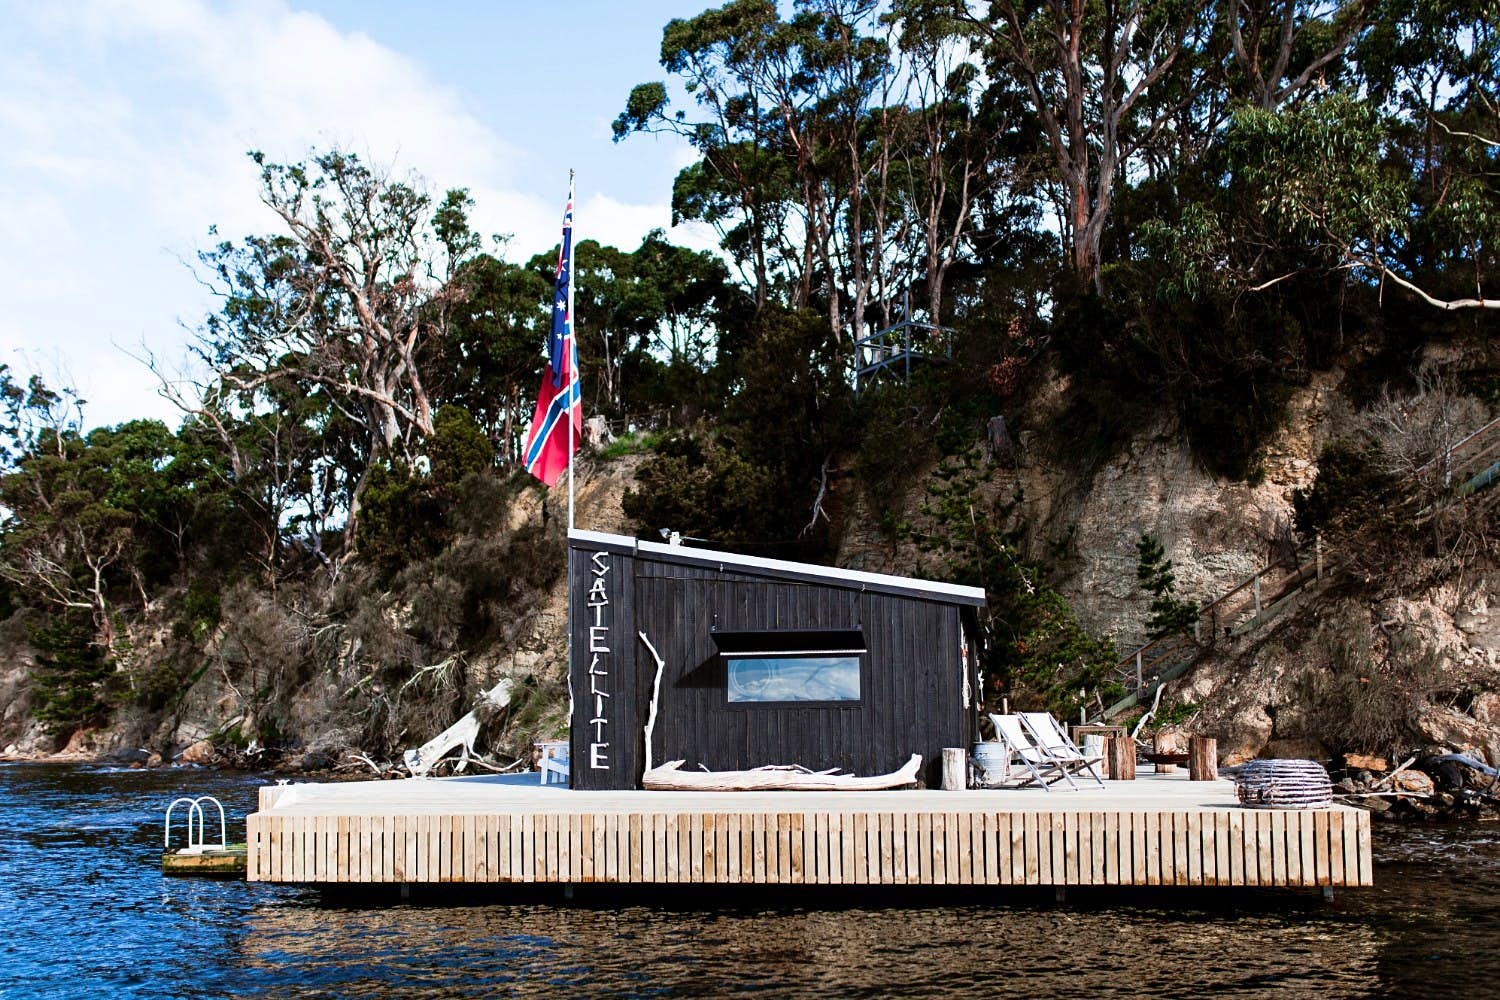 A view of the Boathouse on Satellite Island in Tasmania